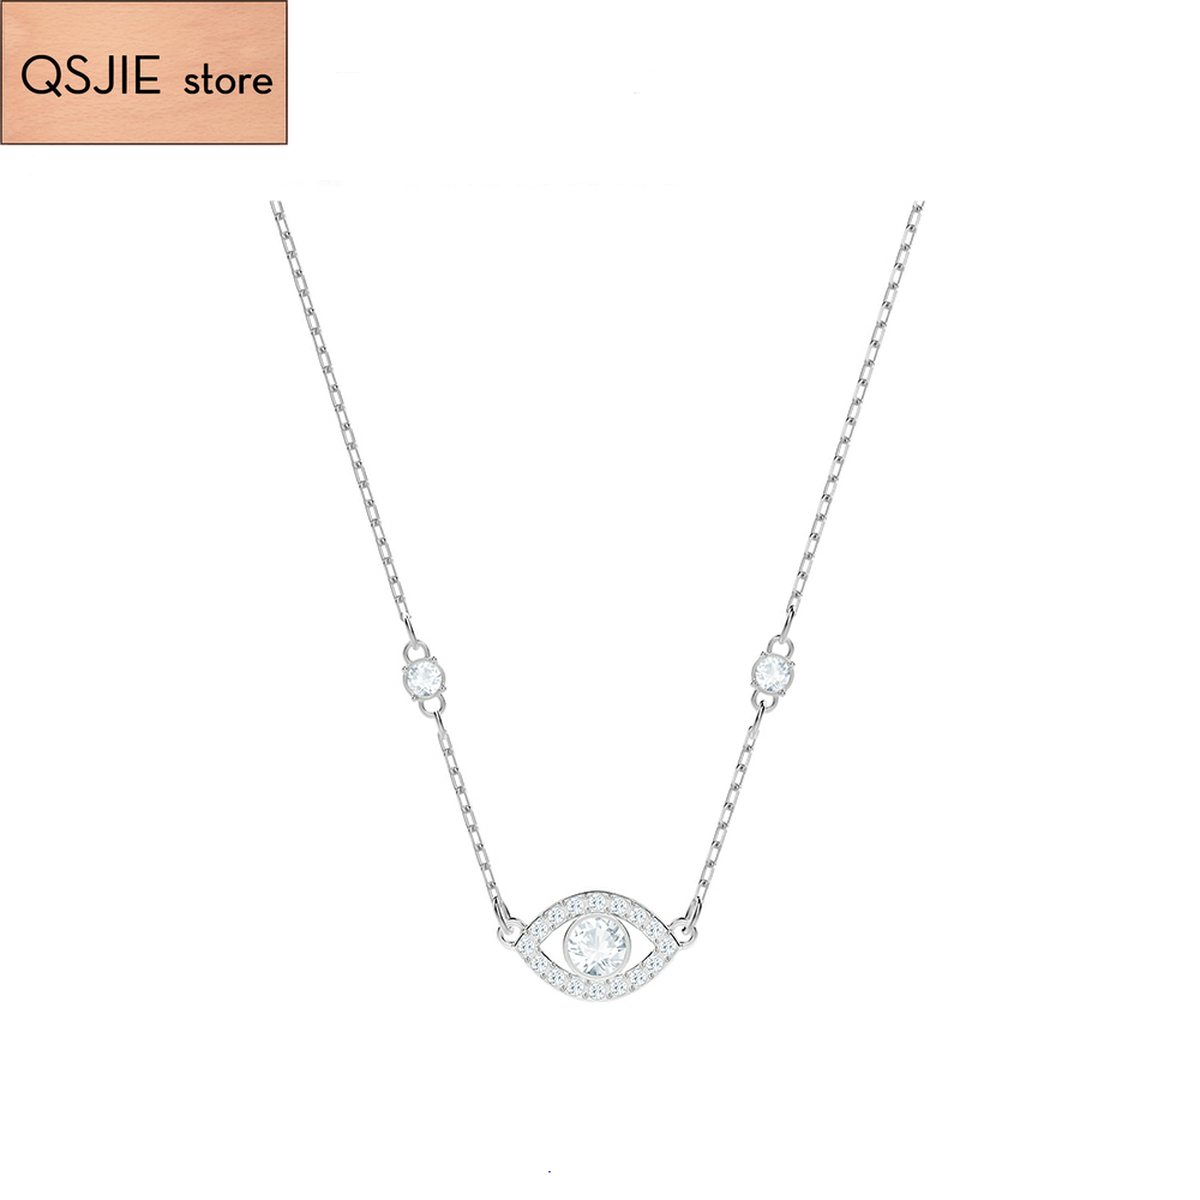 High Quality SWA Original Model 1:1 Making Edition Womens Necklace Gift for Women